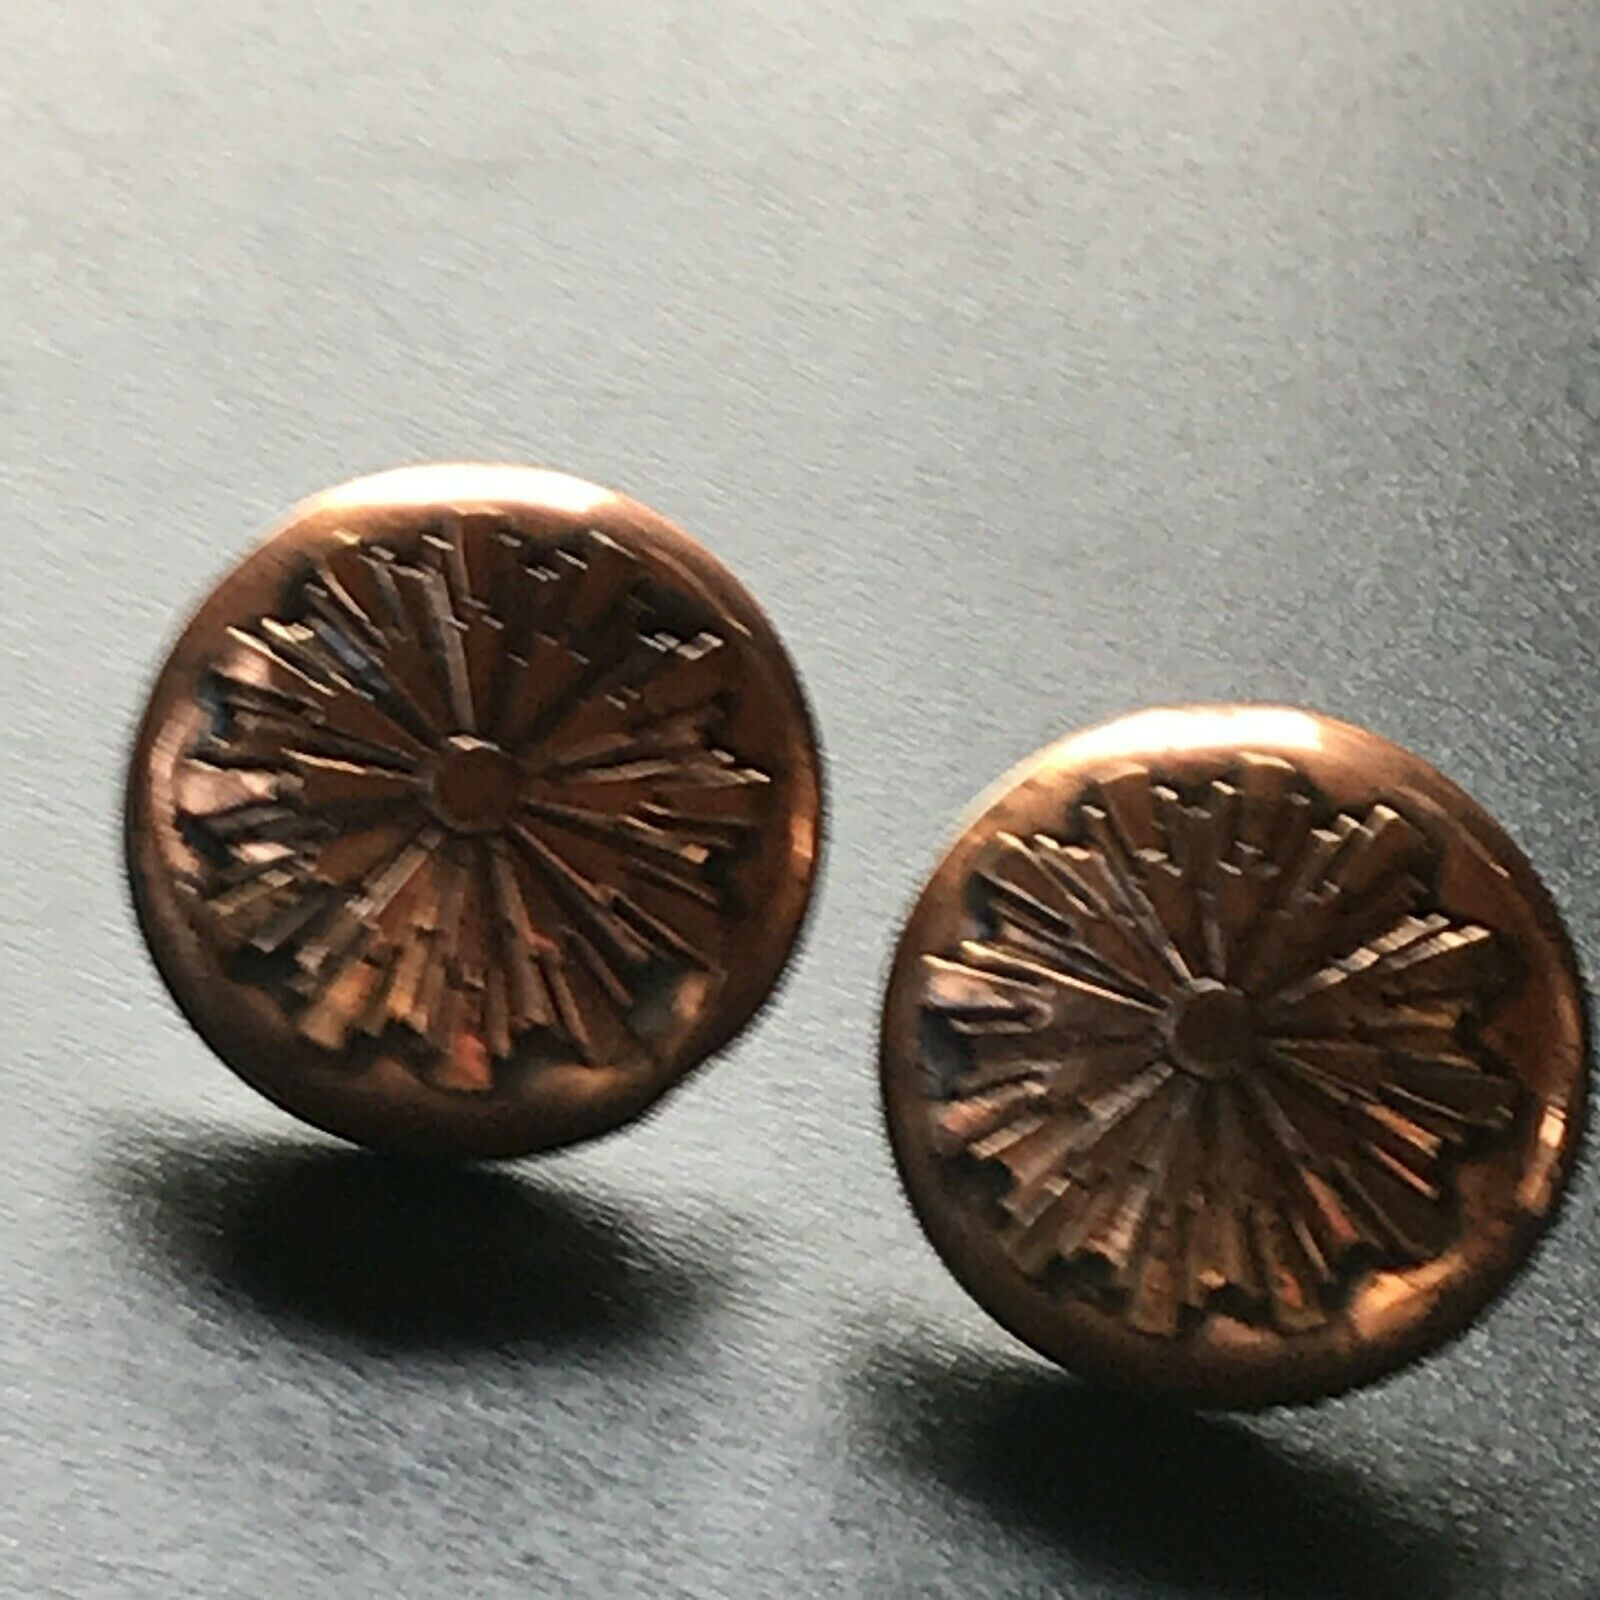 Primary image for Vintage Large Solid Copper Hollow Round w Starburst Overlay Screwback Earrings –